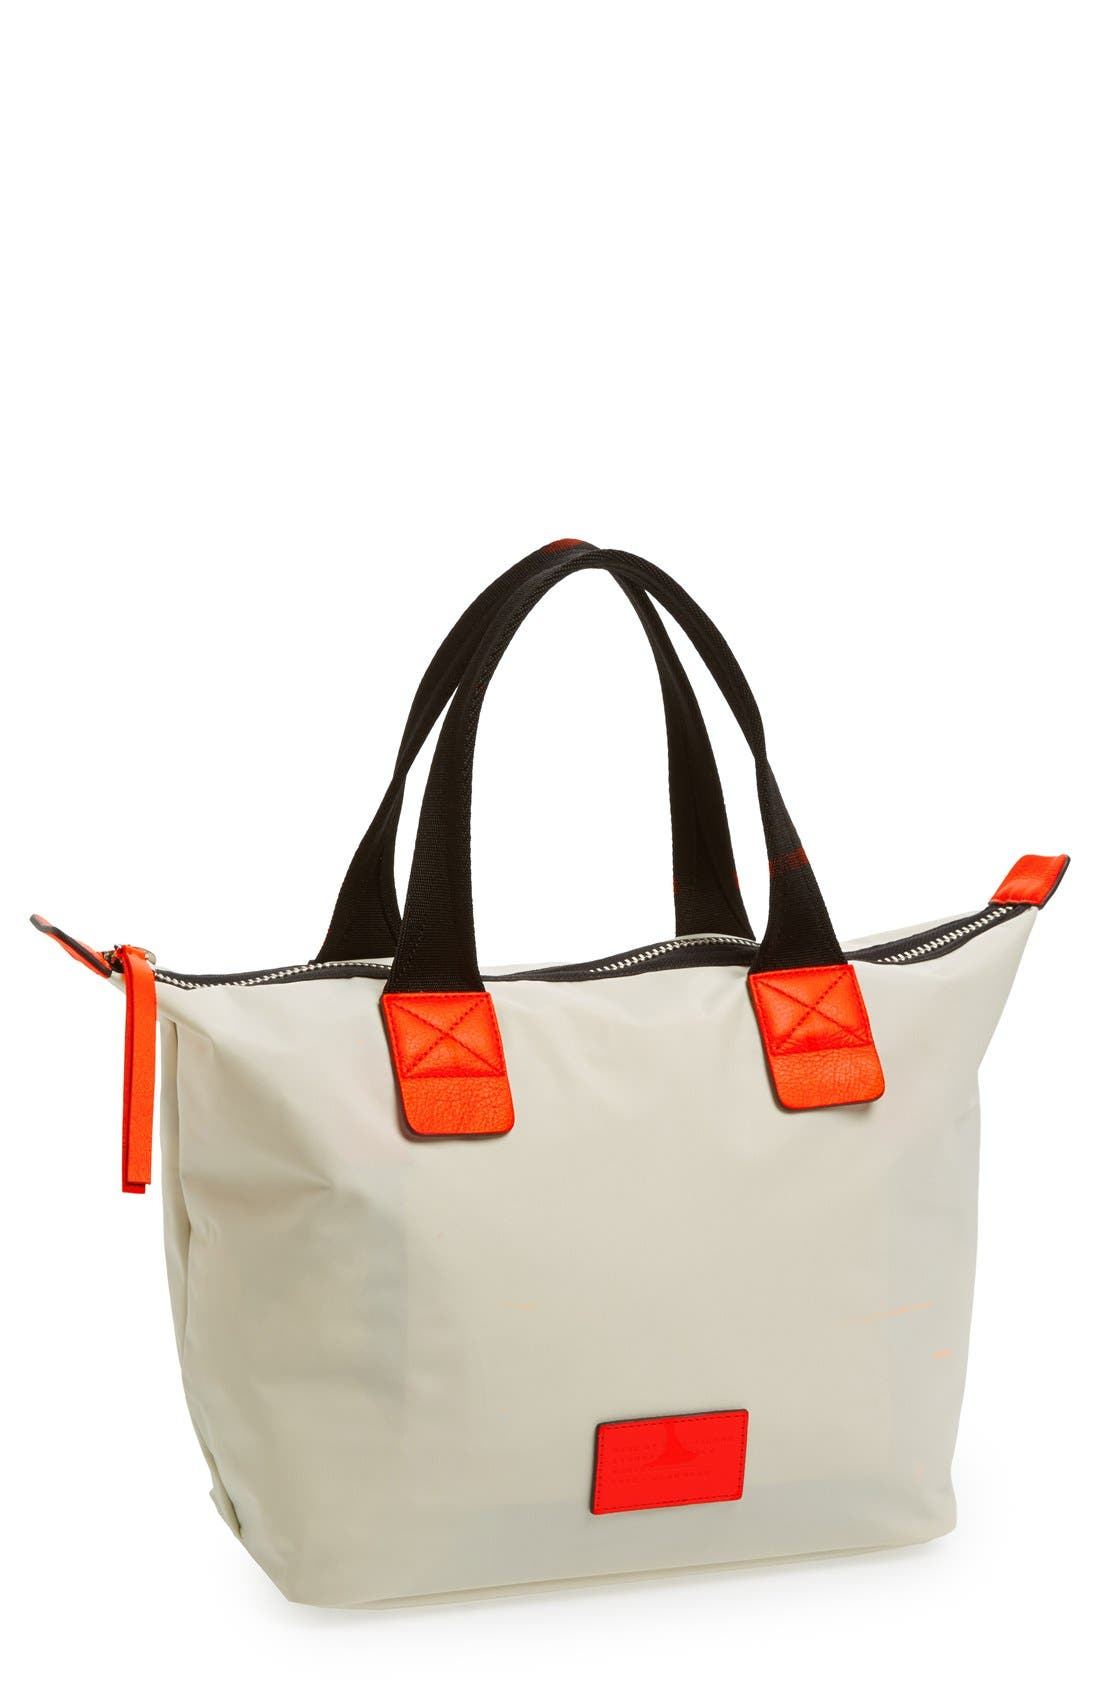 Alternate Image 1 Selected - MARC BY MARC JACOBS 'Domo Arigato' Tote